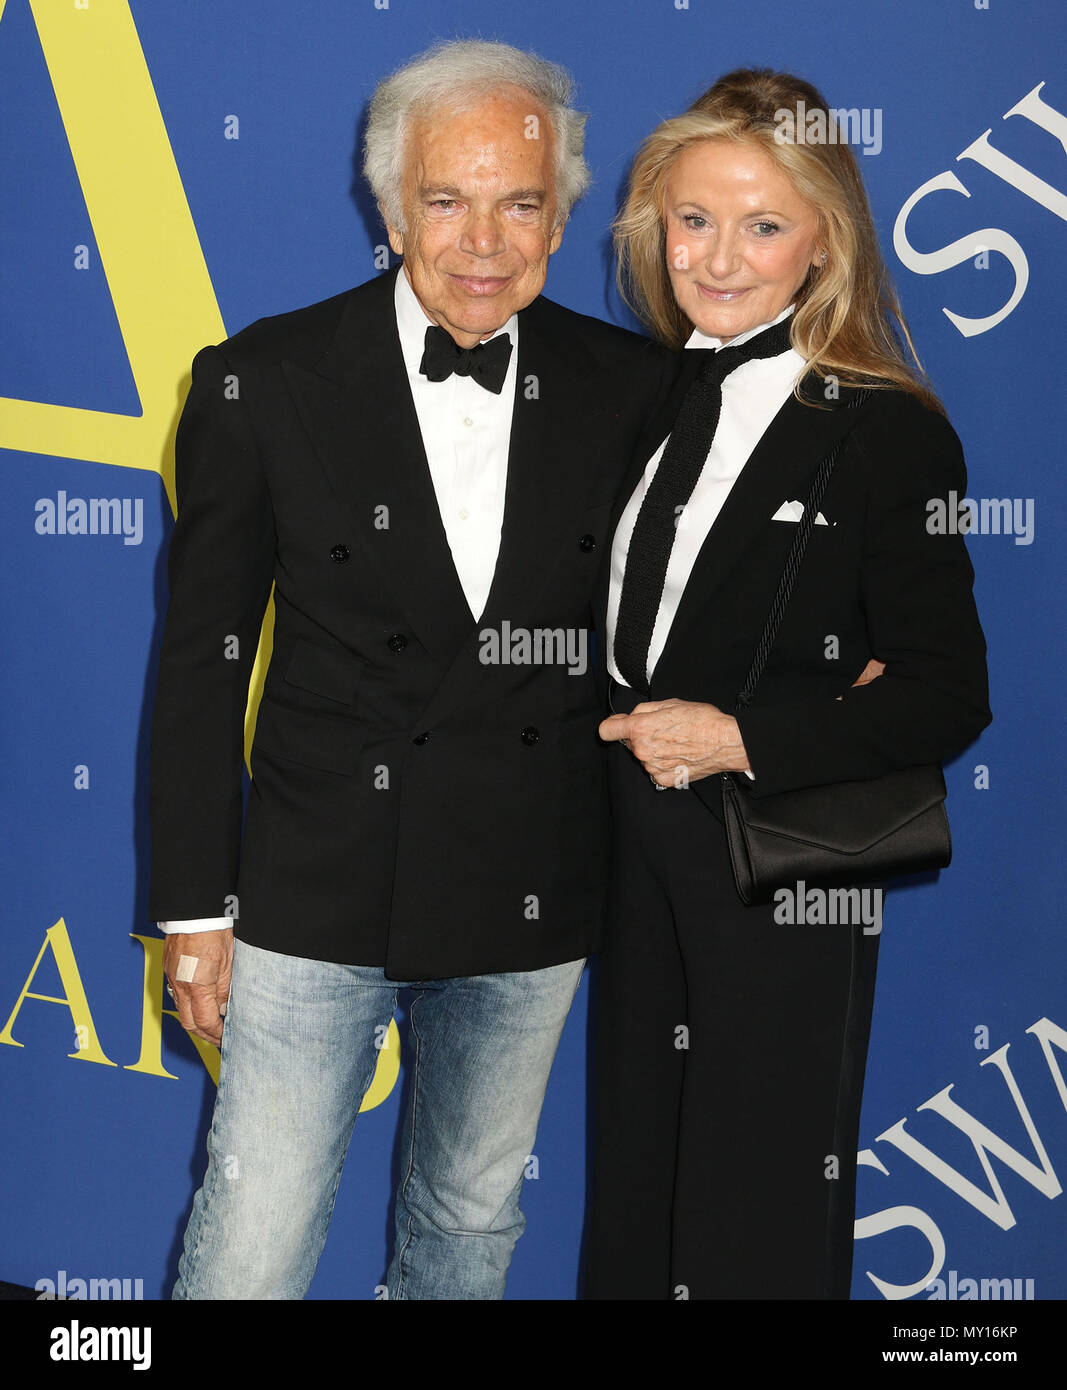 separation shoes e83b6 7d674 Ralph Lauren And Wife Ricky Immagini & Ralph Lauren And Wife ...